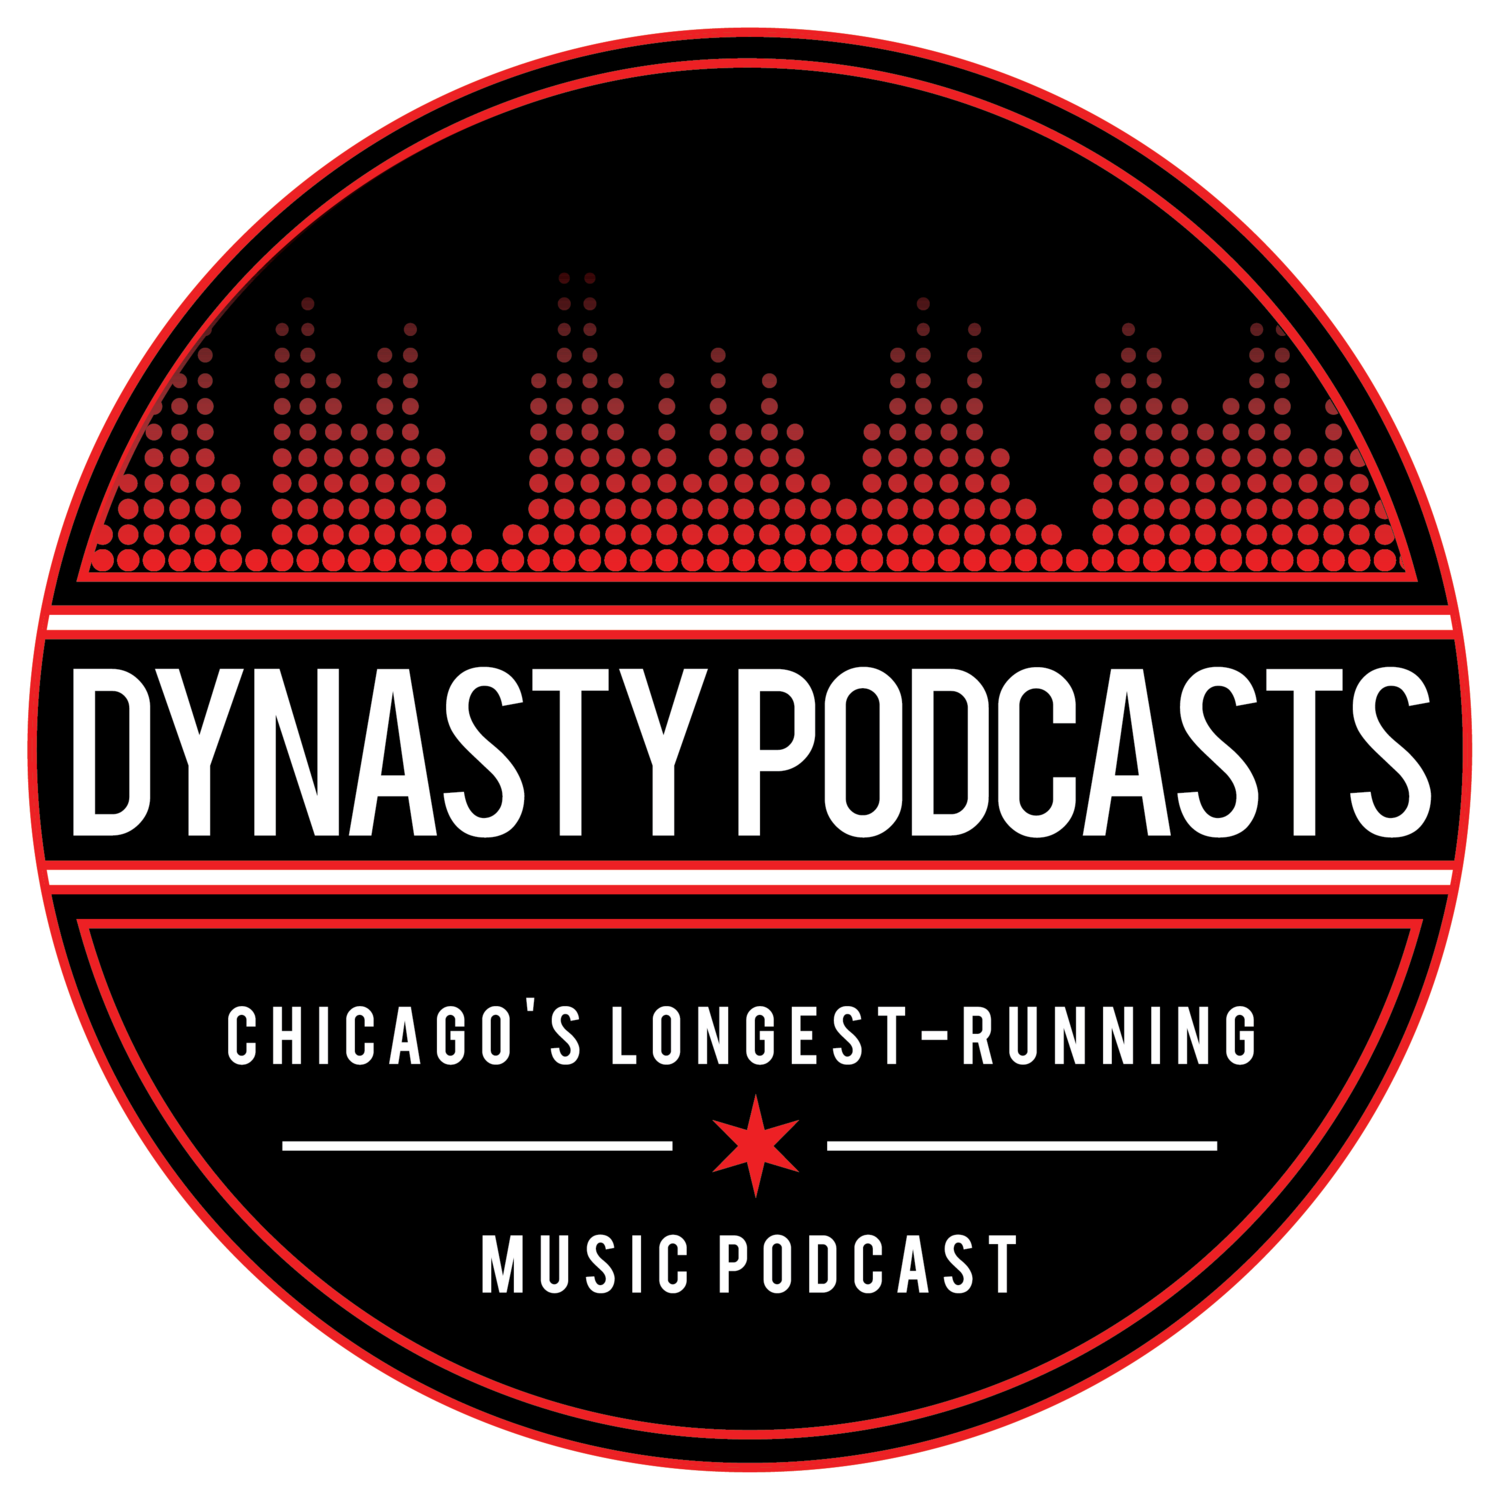 Dynasty Podcasts